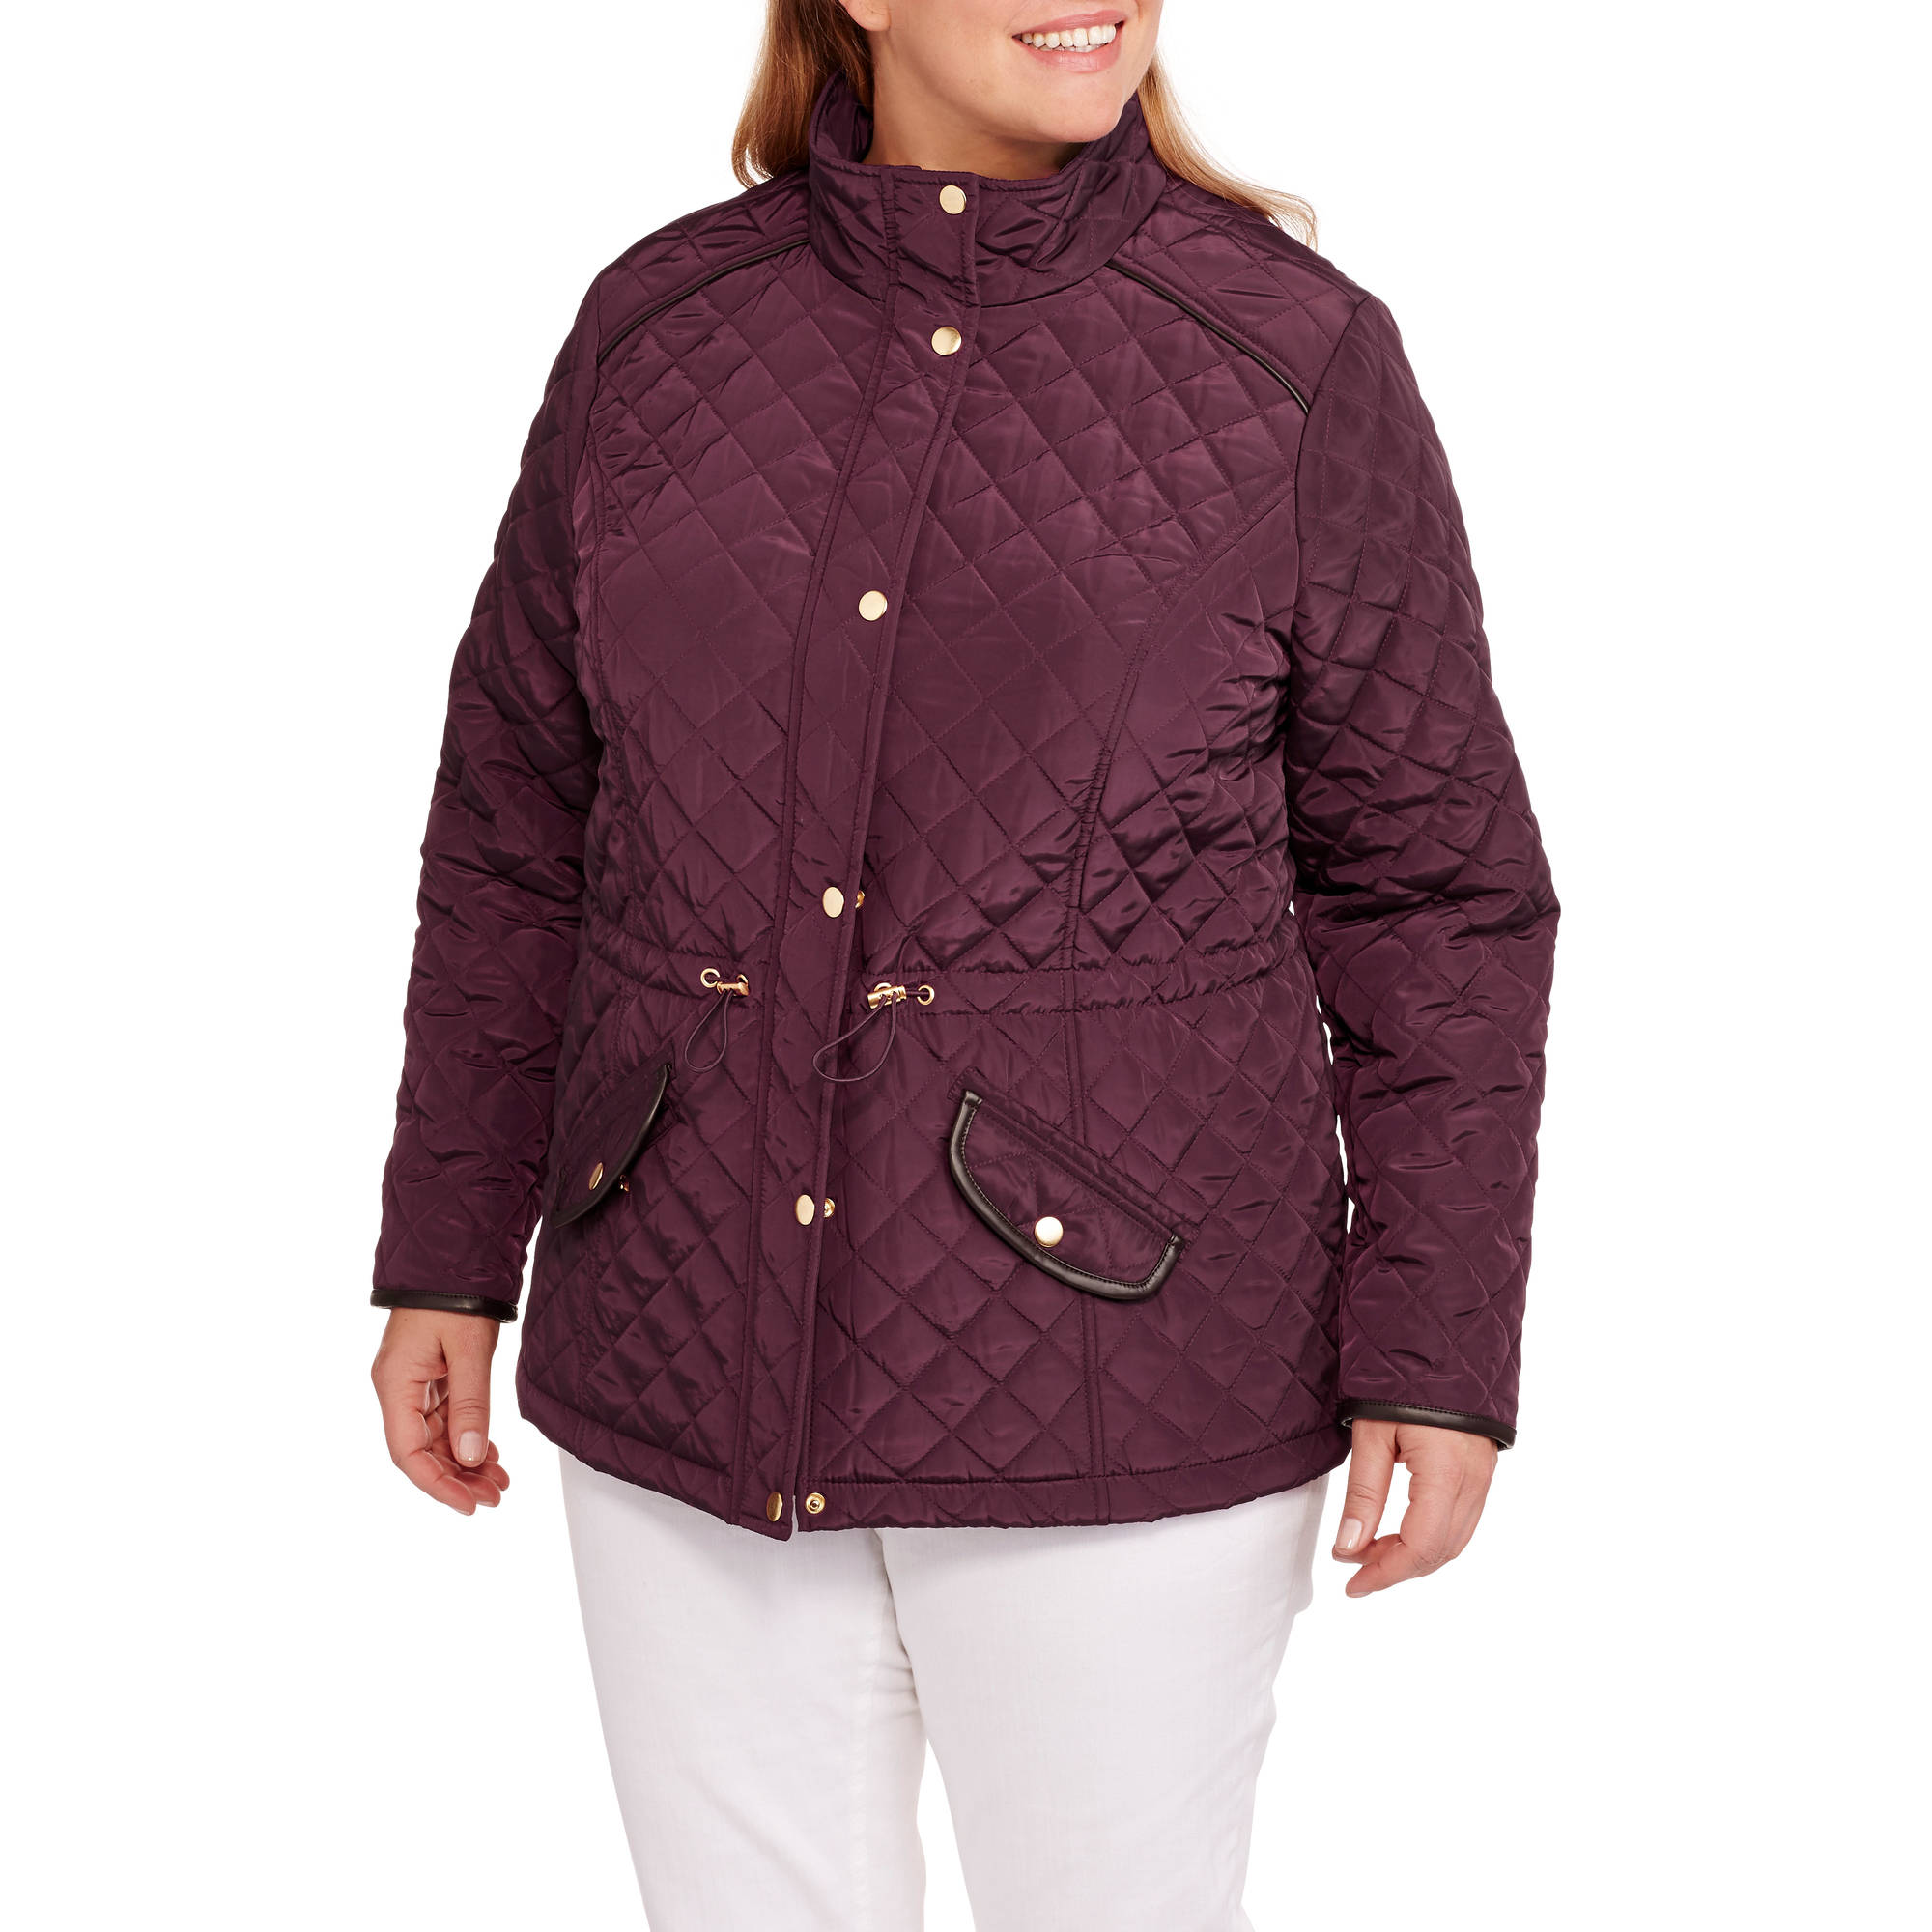 Maxwell Studio Women's Plus-Size Quilted Barn Jacket With Faux Leather Trim